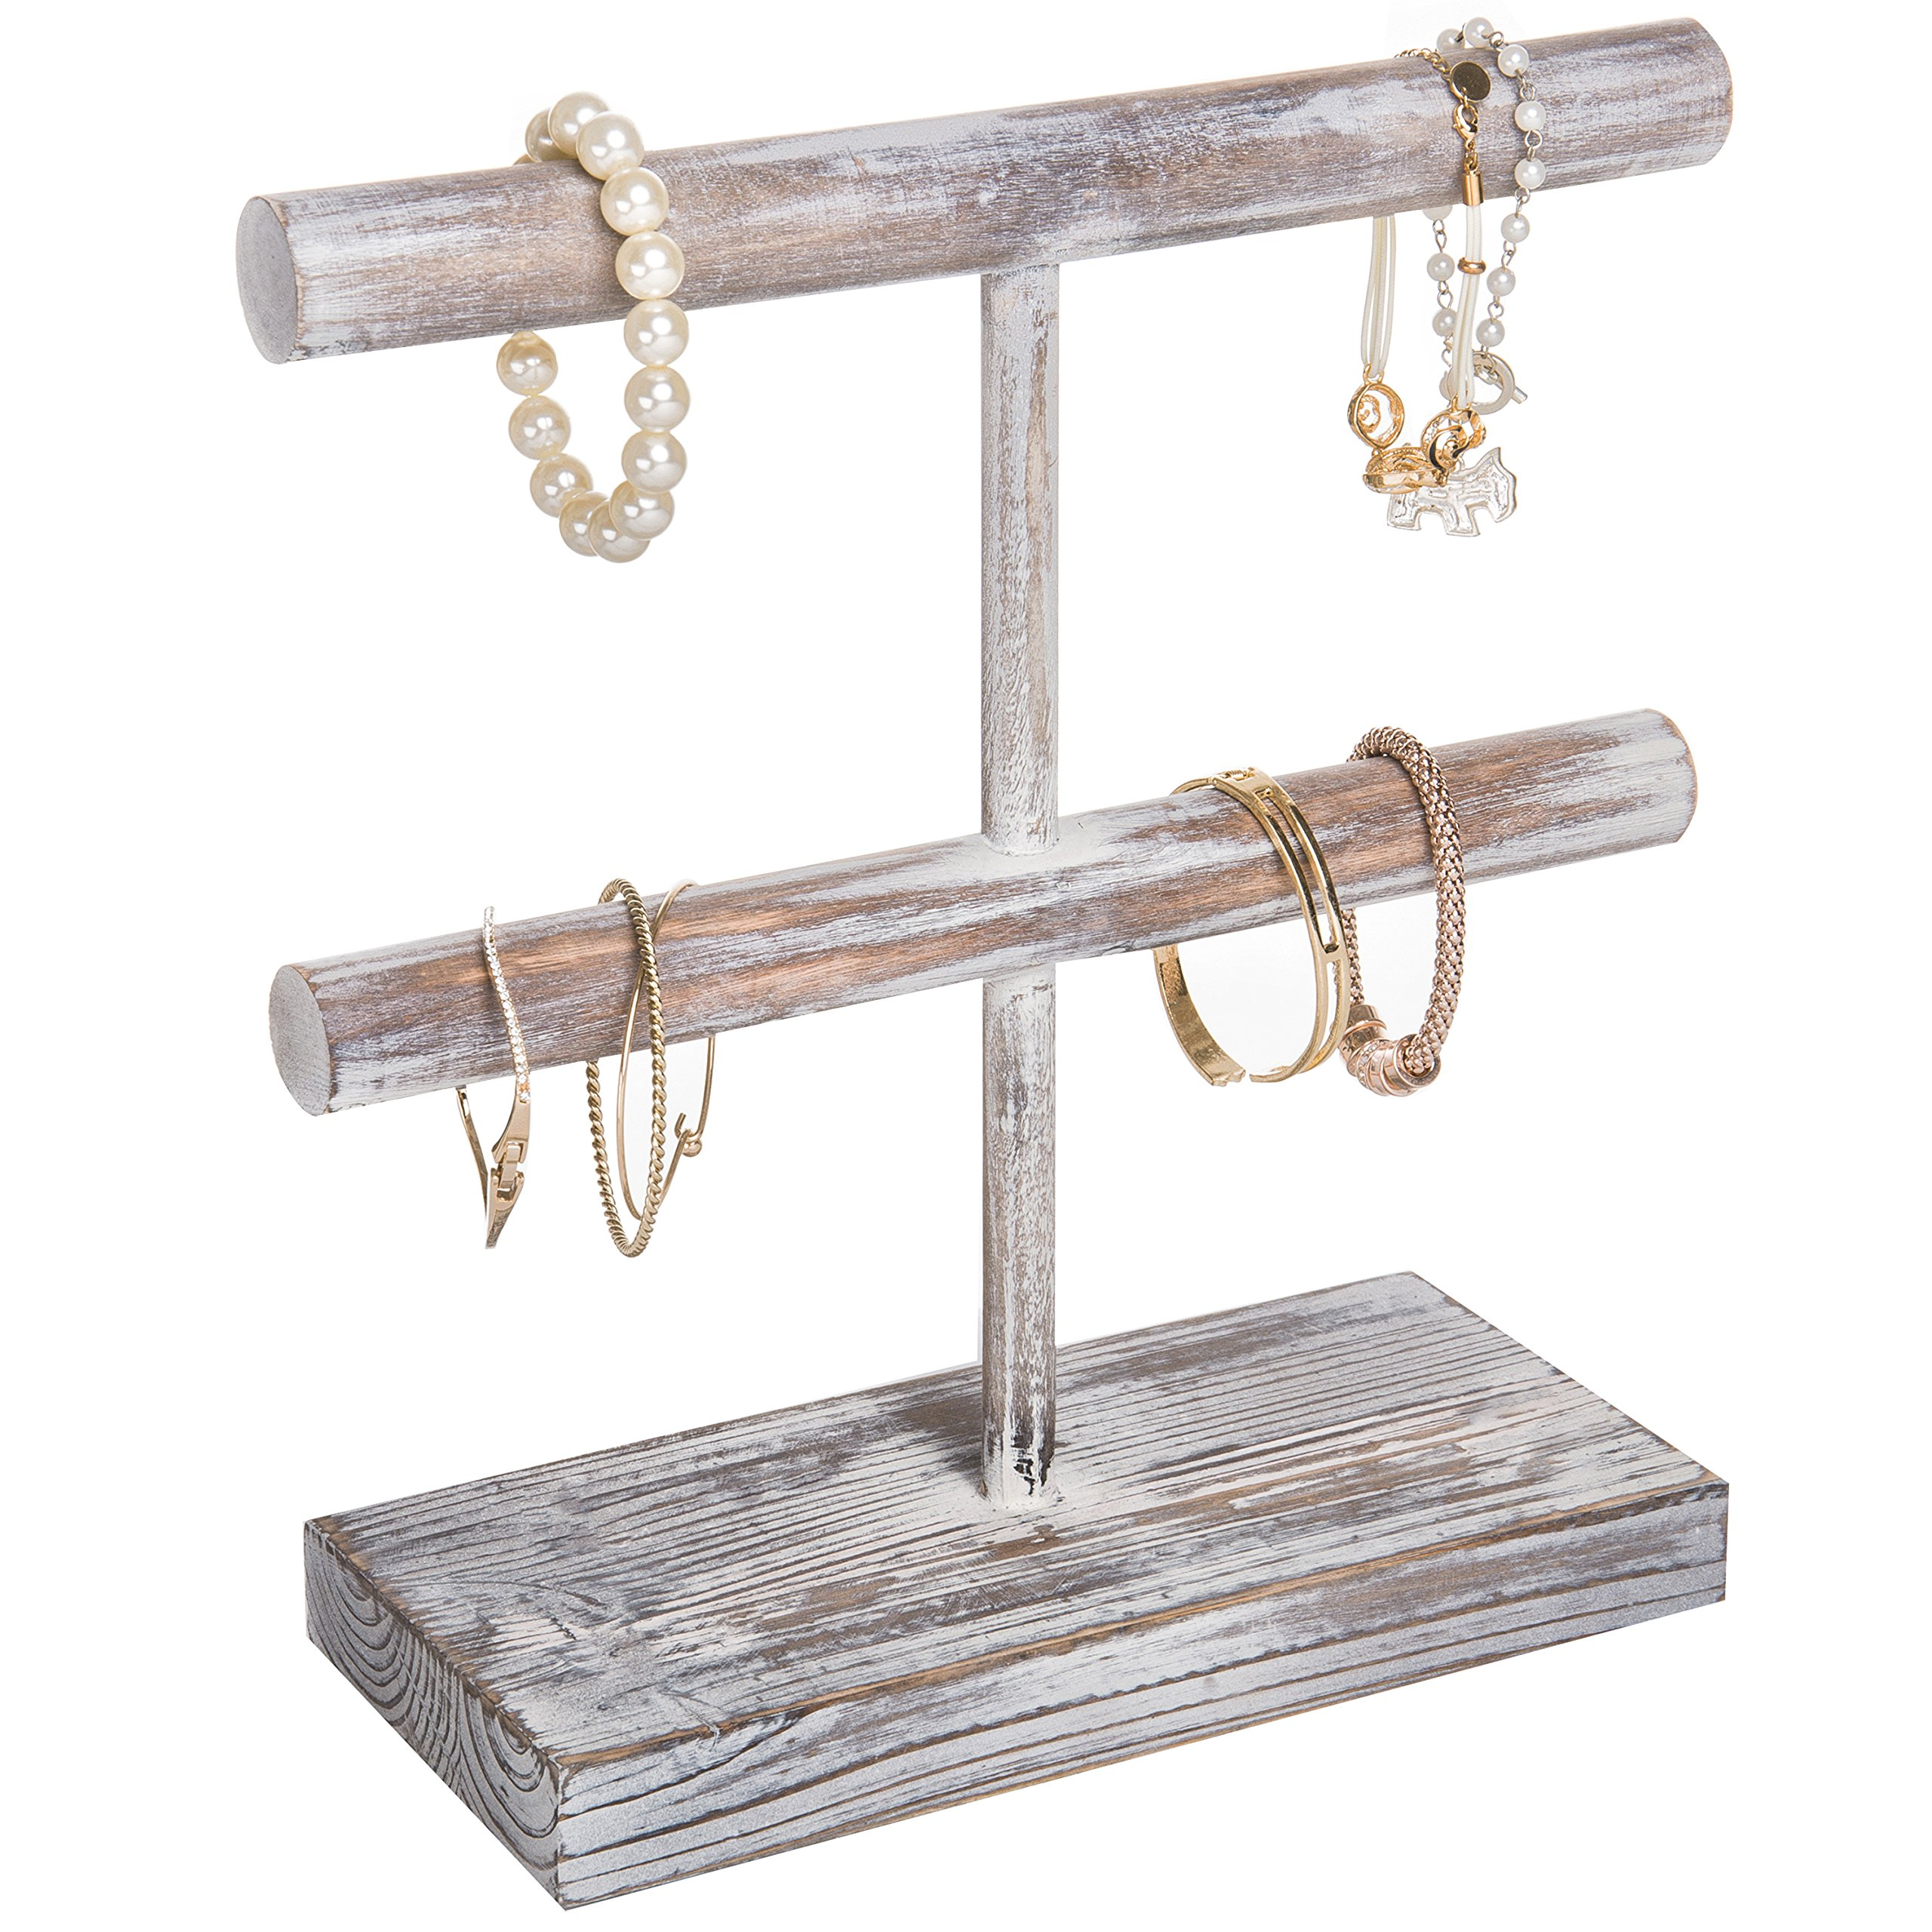 MyGift Rustic 2-Tier Torched Wood T-Bar Jewelry Display Rack, Bracelet & Watch Organizer